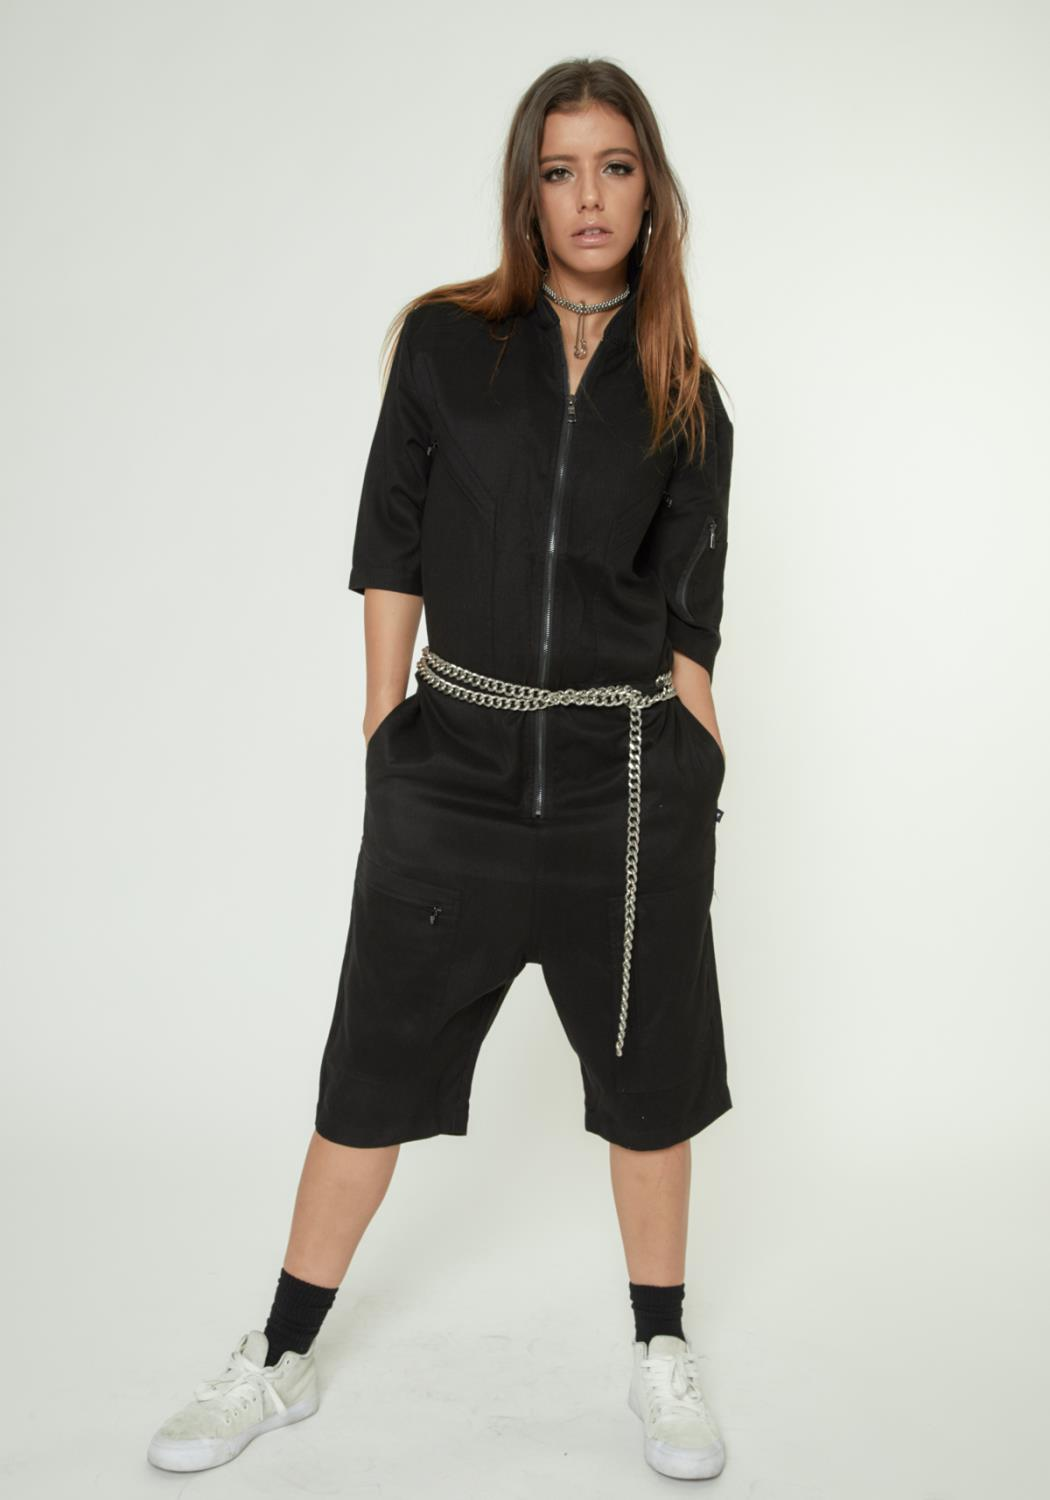 SHORT SLEEVE OVERALL WITH ZIPPER POCKETS